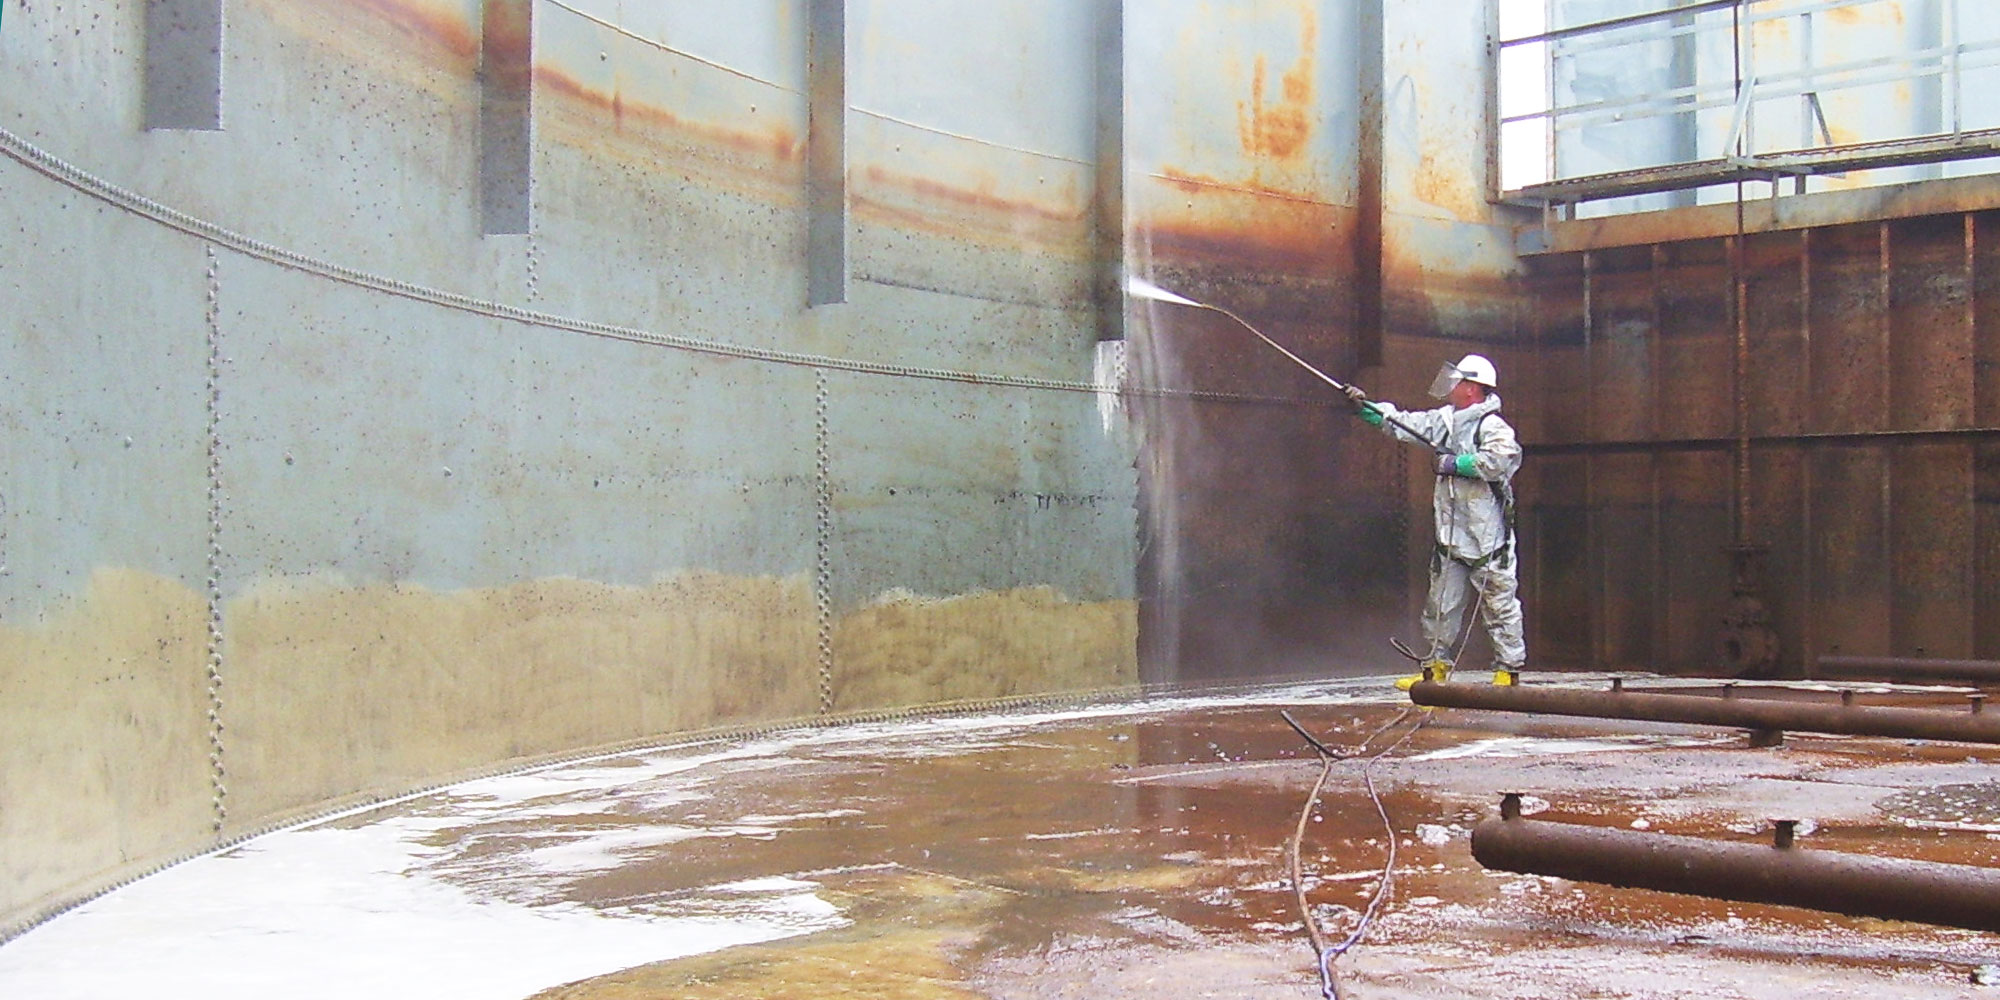 Hydroblasting Waterblasting Industrial Services Amp Applications